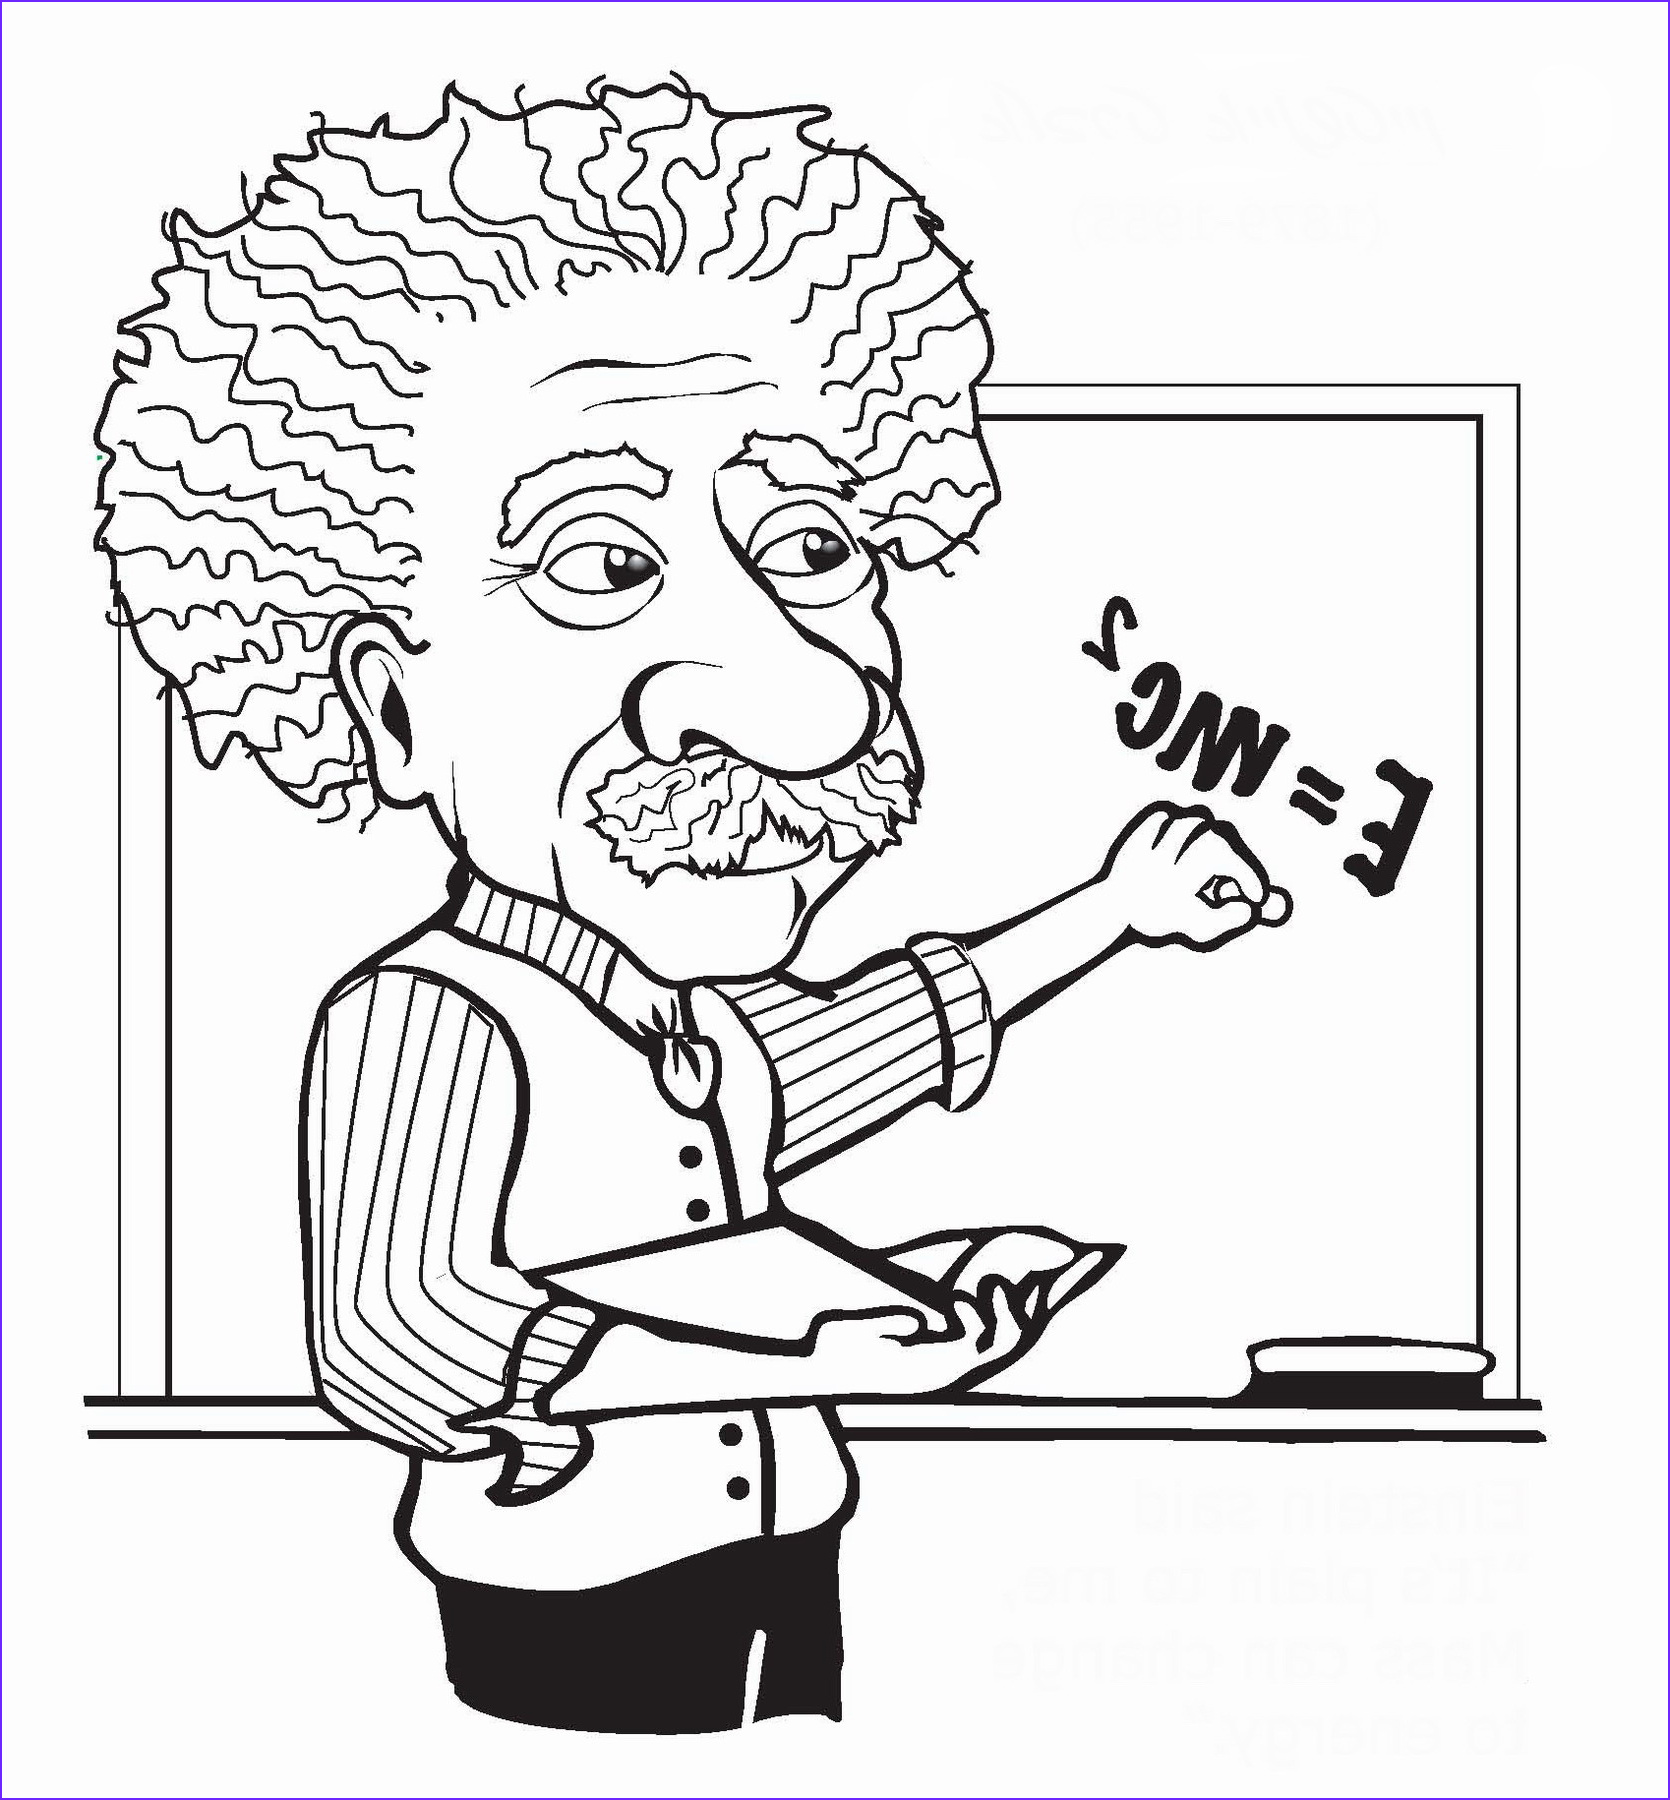 Science Coloring Book Unique Image Science Coloring Pages